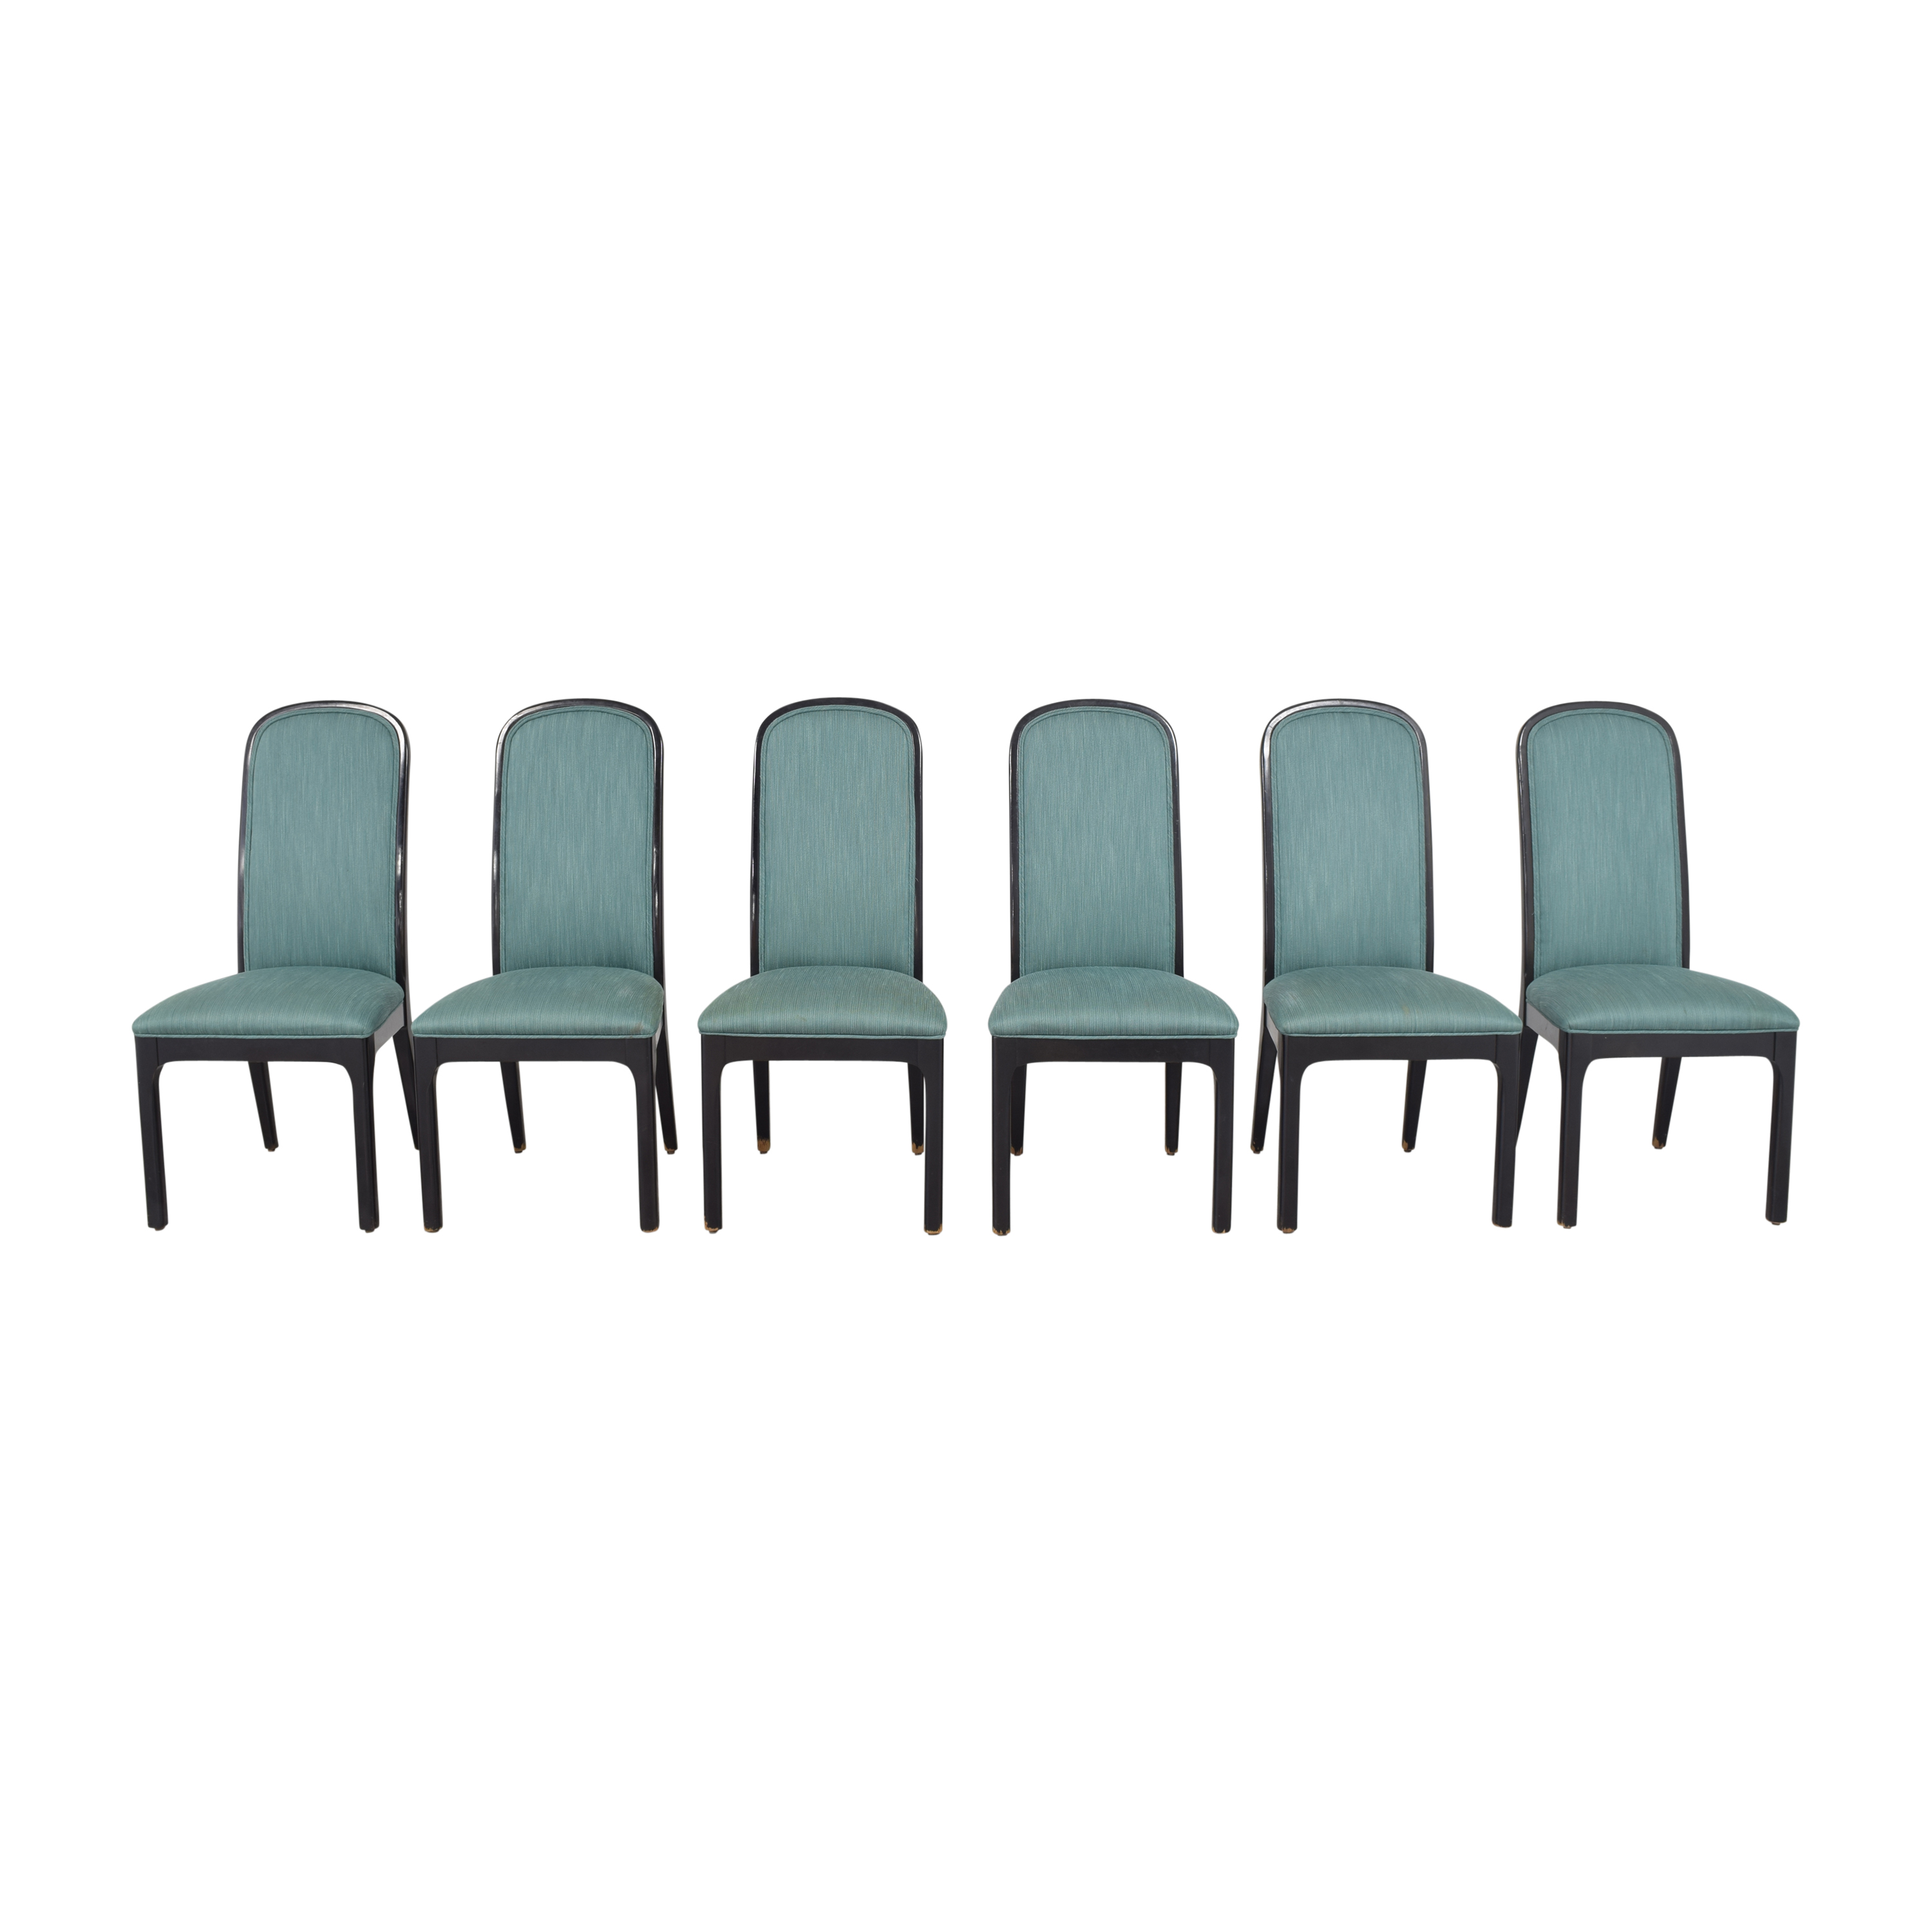 buy Stickley Furniture Cordovan Side Dining Chairs Stickley Furniture Chairs